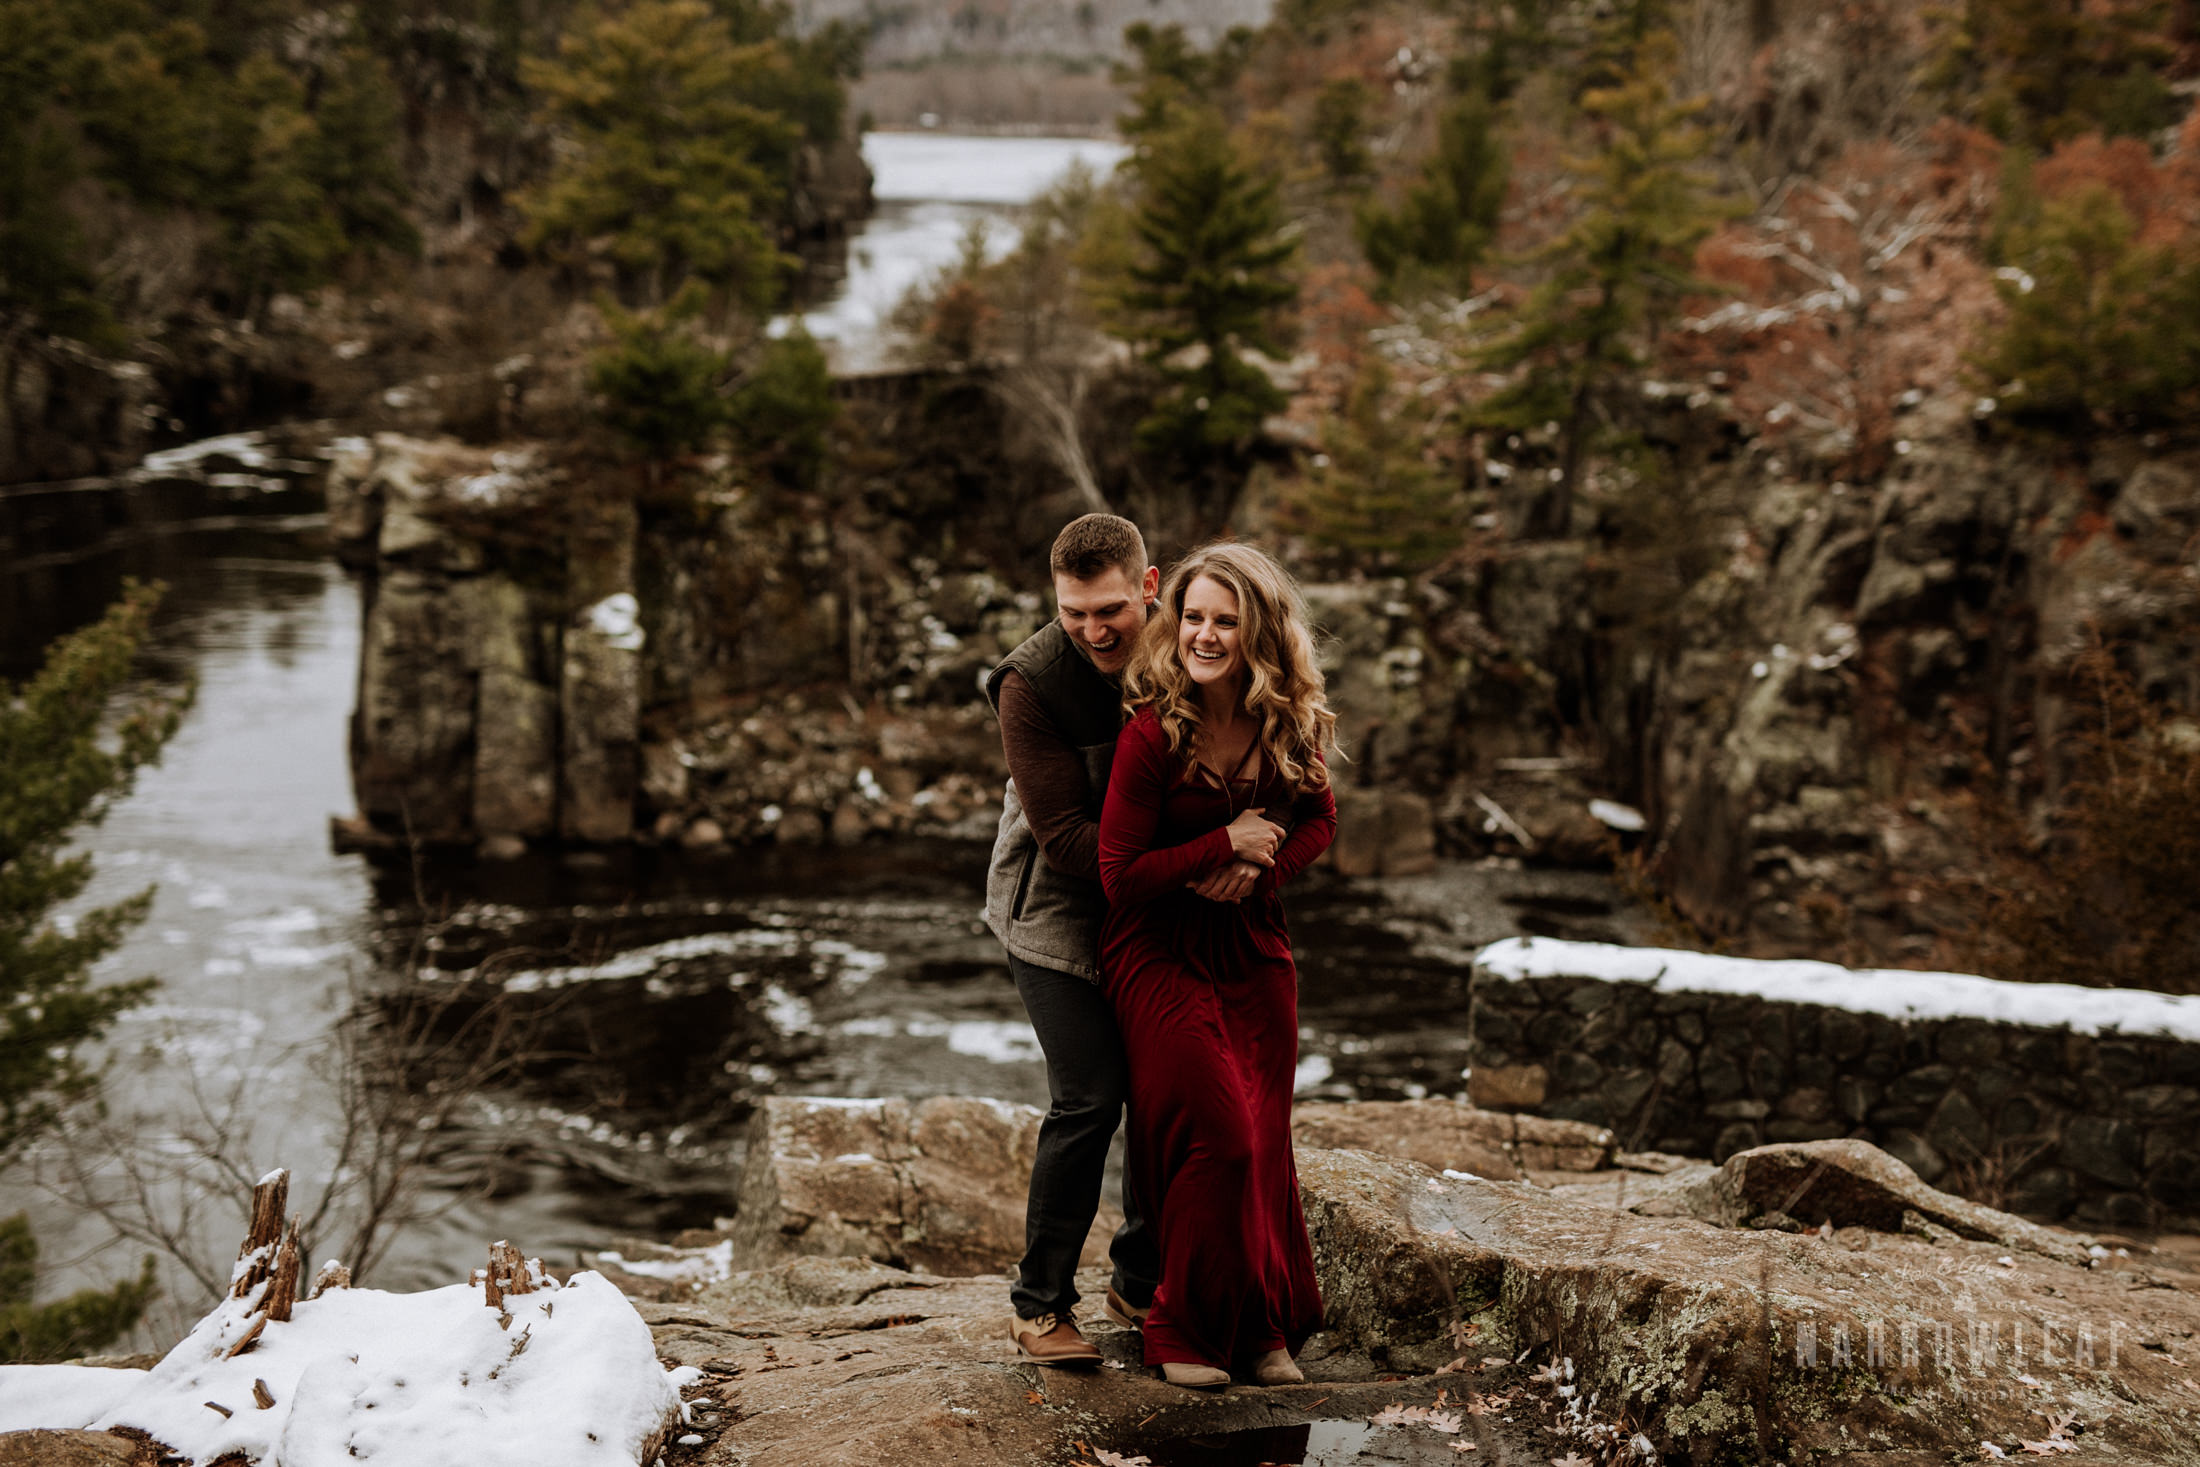 wisconsin-winter-adventure-engagement-interstate-park-bluffs-Narrowleaf_Love_and_Adventure_Photography-1656.jpg